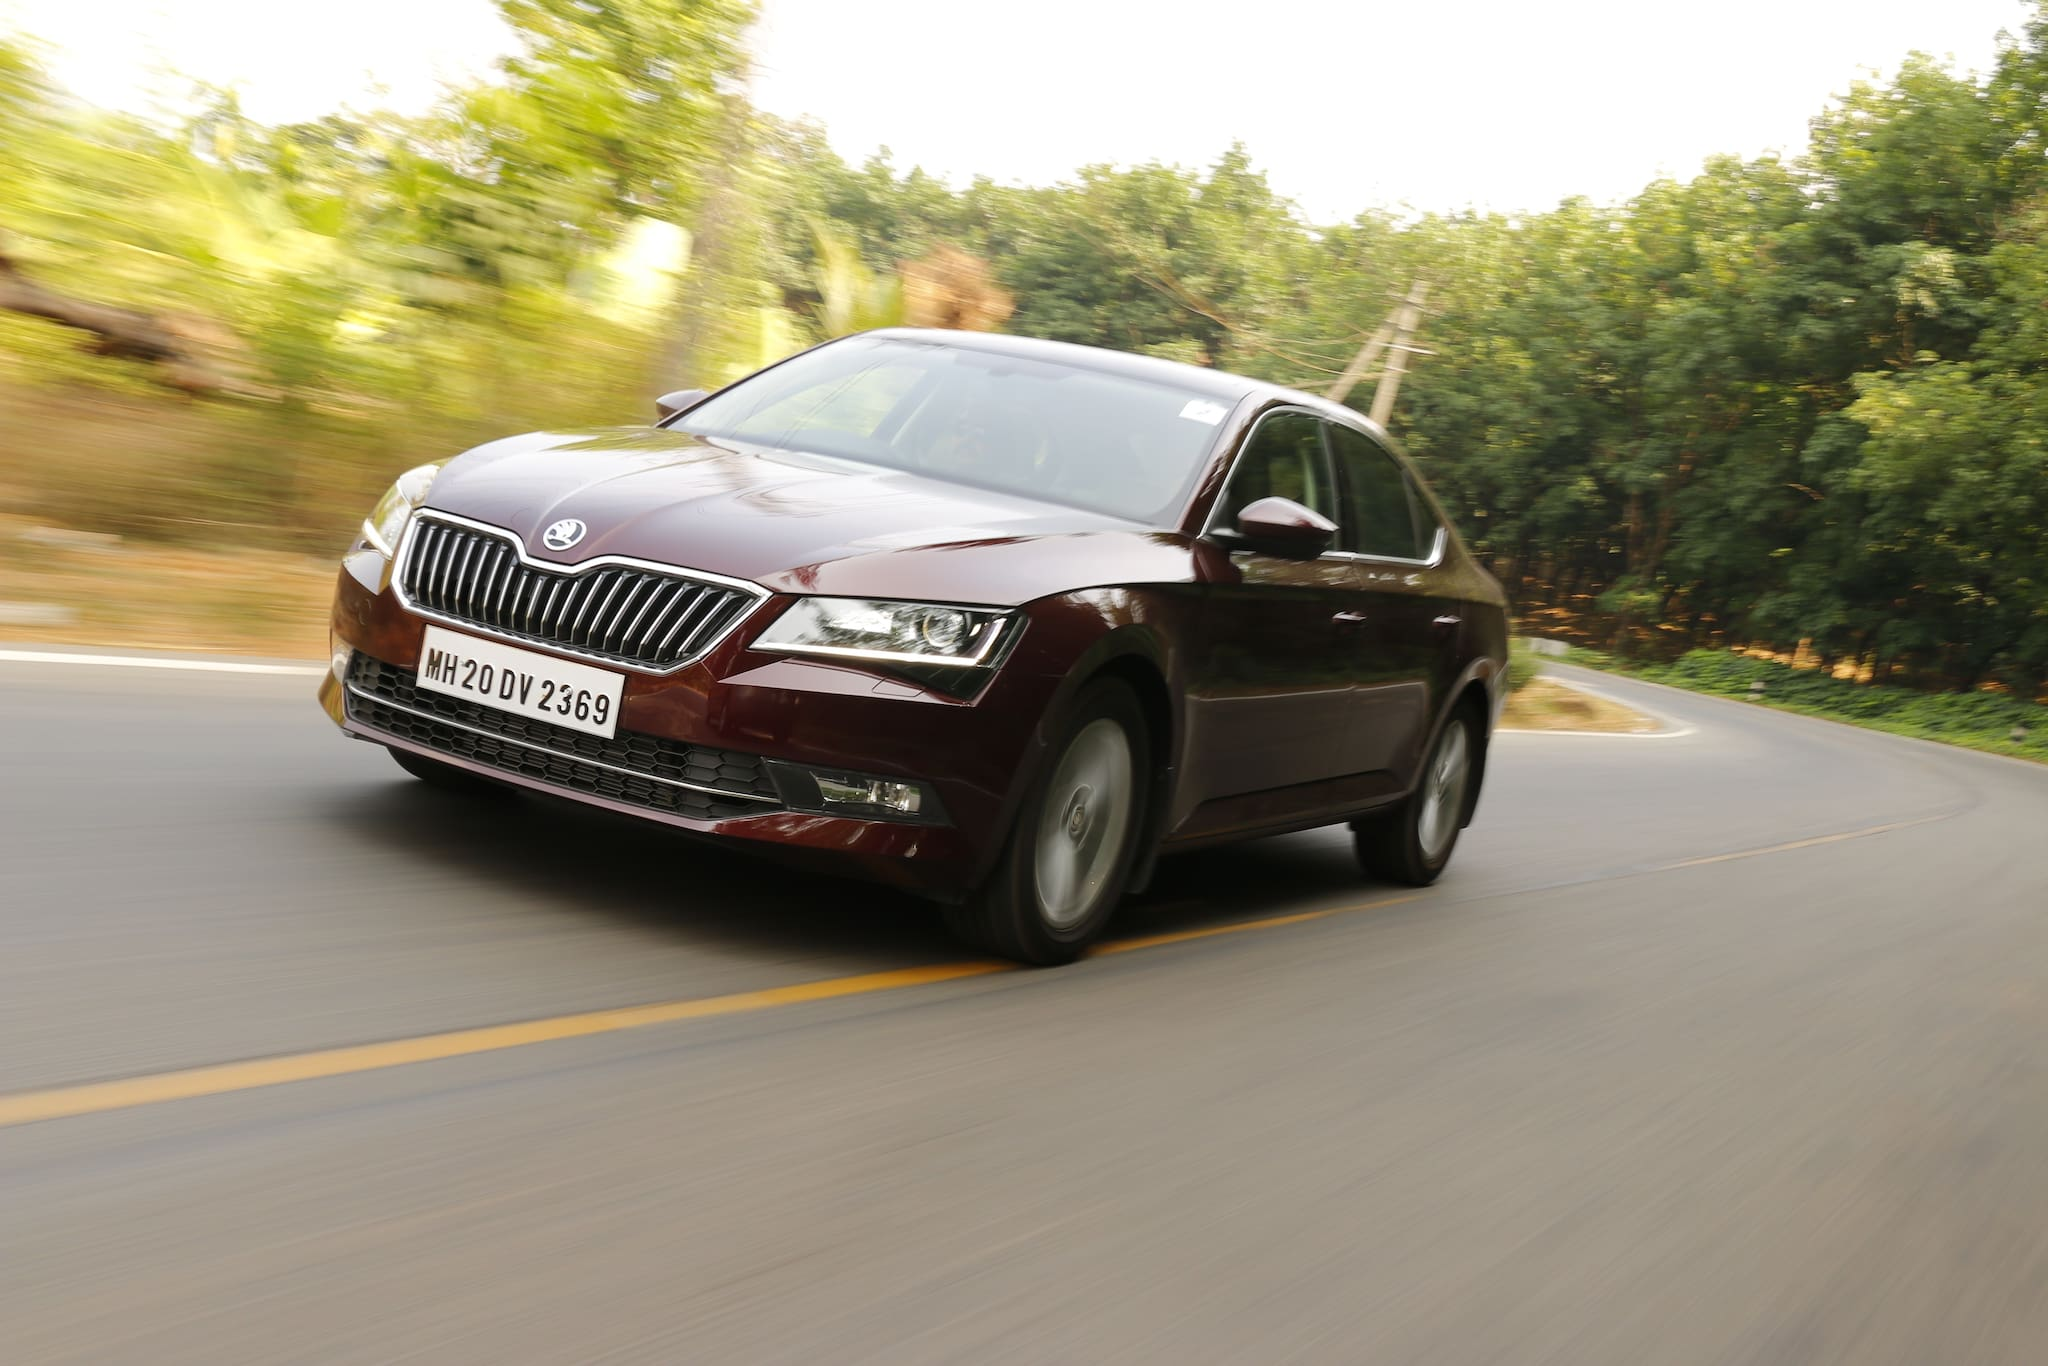 Own A Skoda Superb For Rs 17.51 Lakh... With A Small Catch!